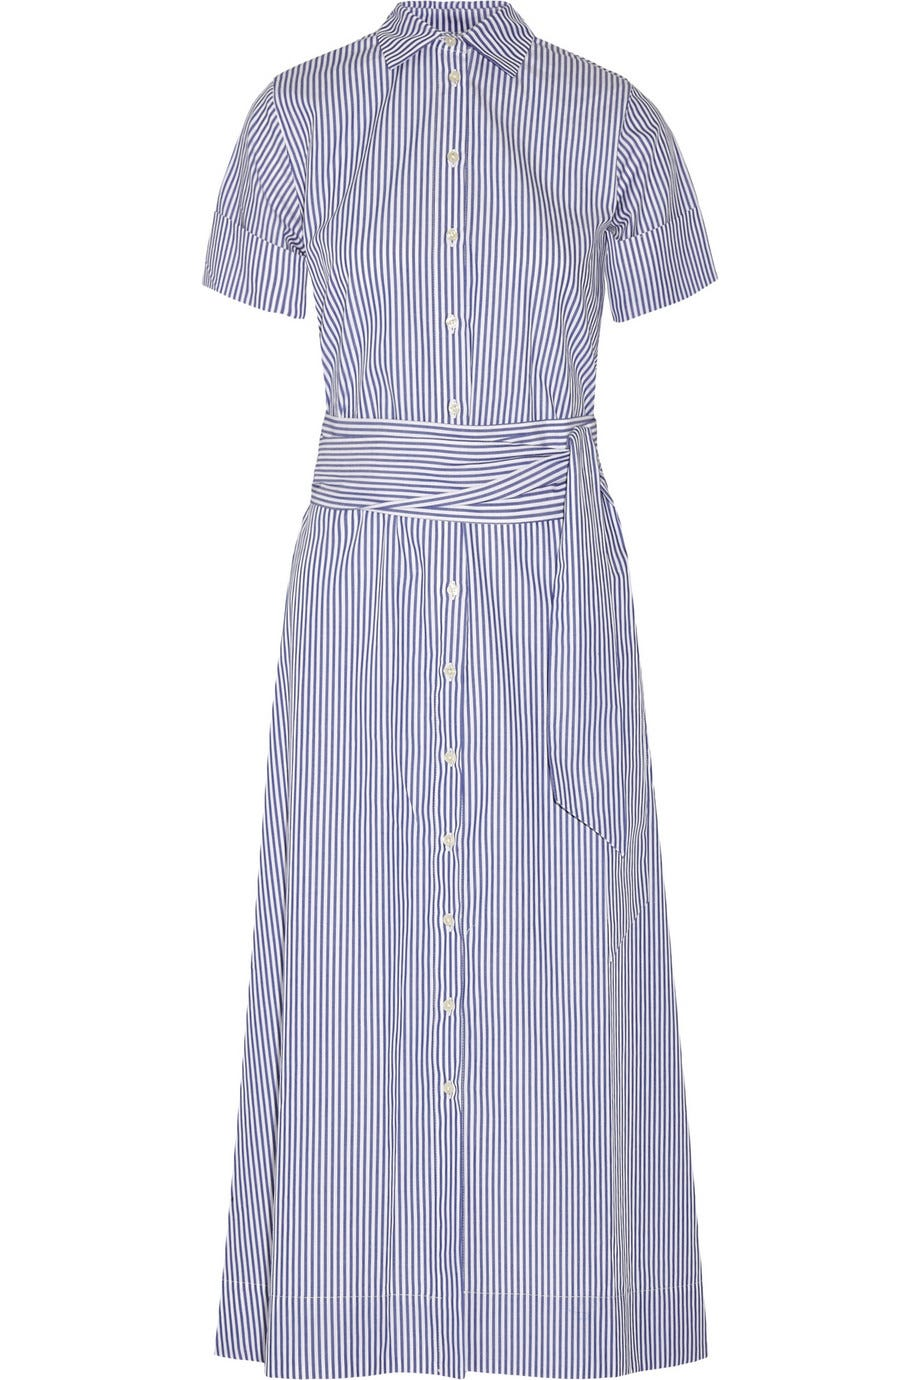 Lisa Marie Fernandez Striped Cotton Poplin Shirt Dress